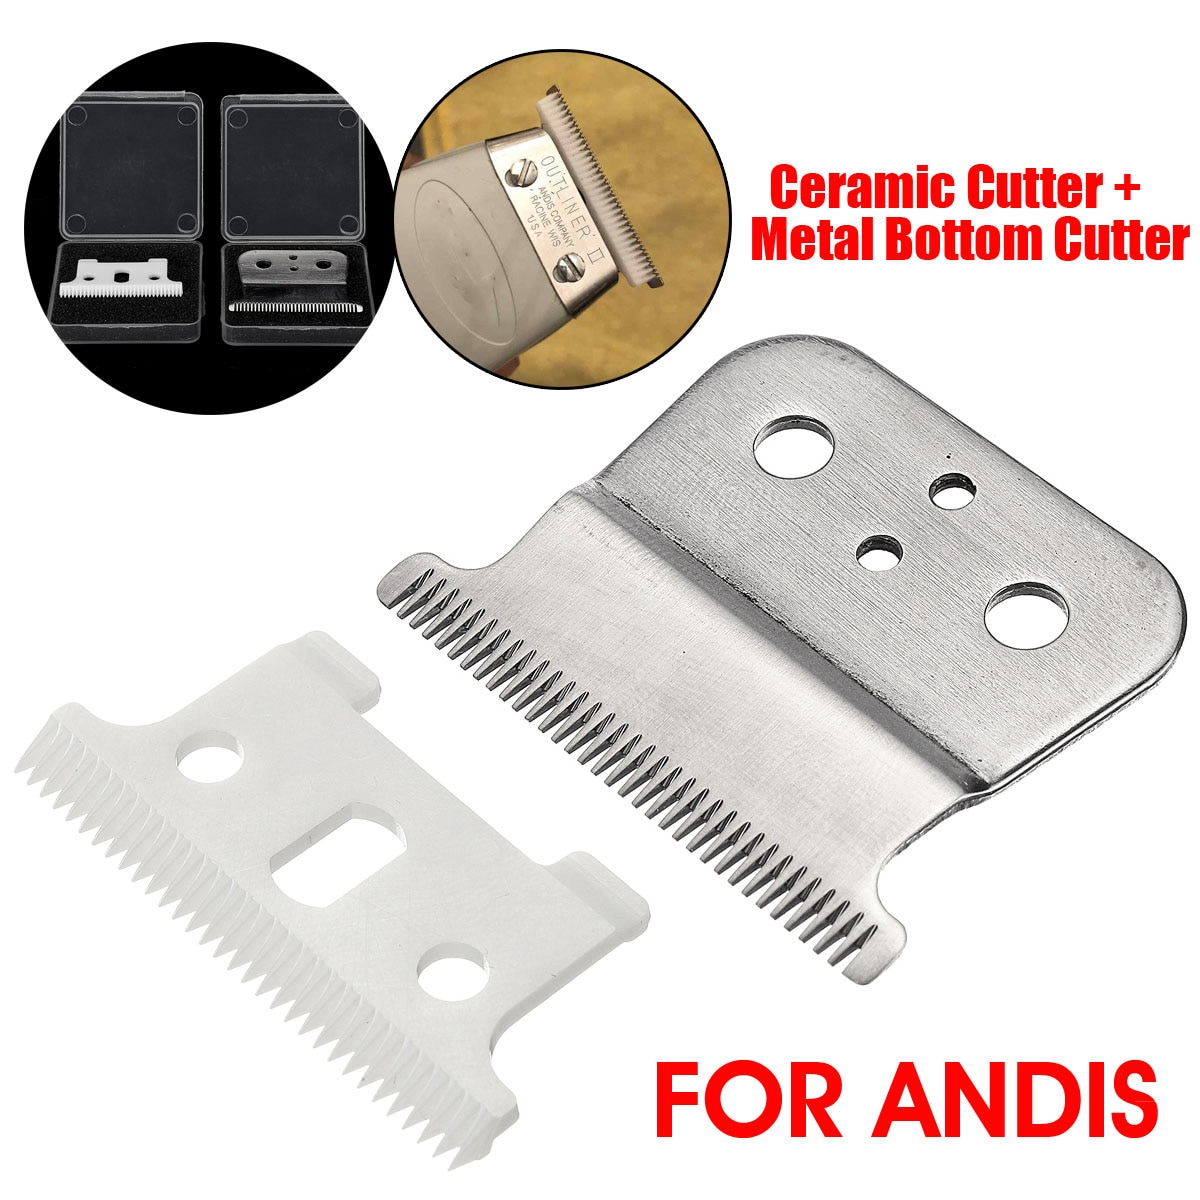 2pcs Ceramic Cutter + Metal Bottom Cutter For Andis Electric Hair Trimmer Replacement Blade For Wahl Electric Hair Clipper Blade